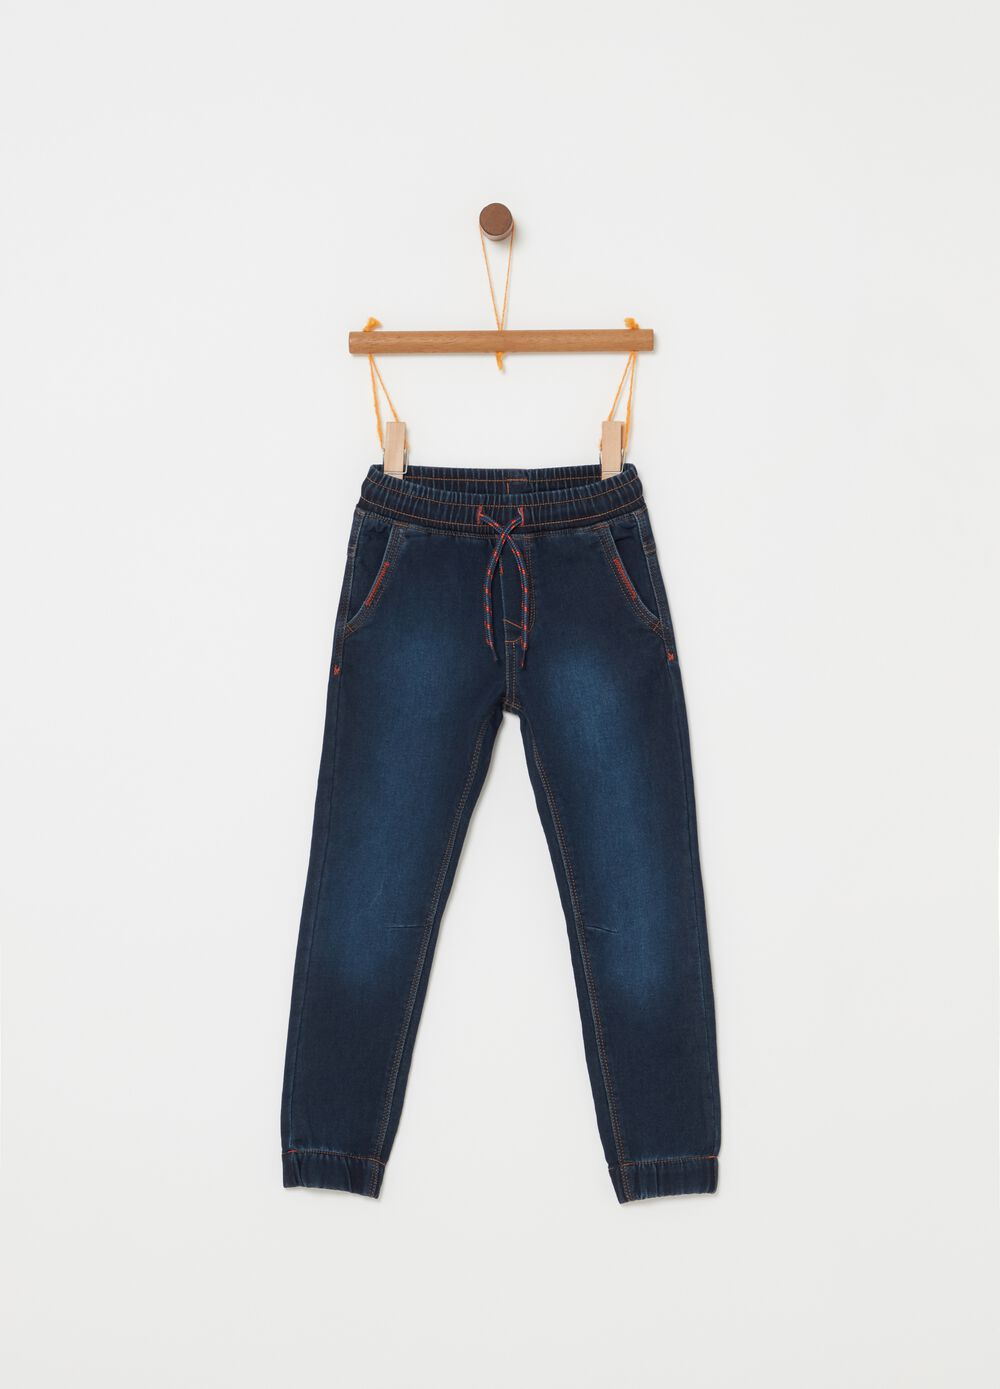 Stretch jeans with pockets and drawstring